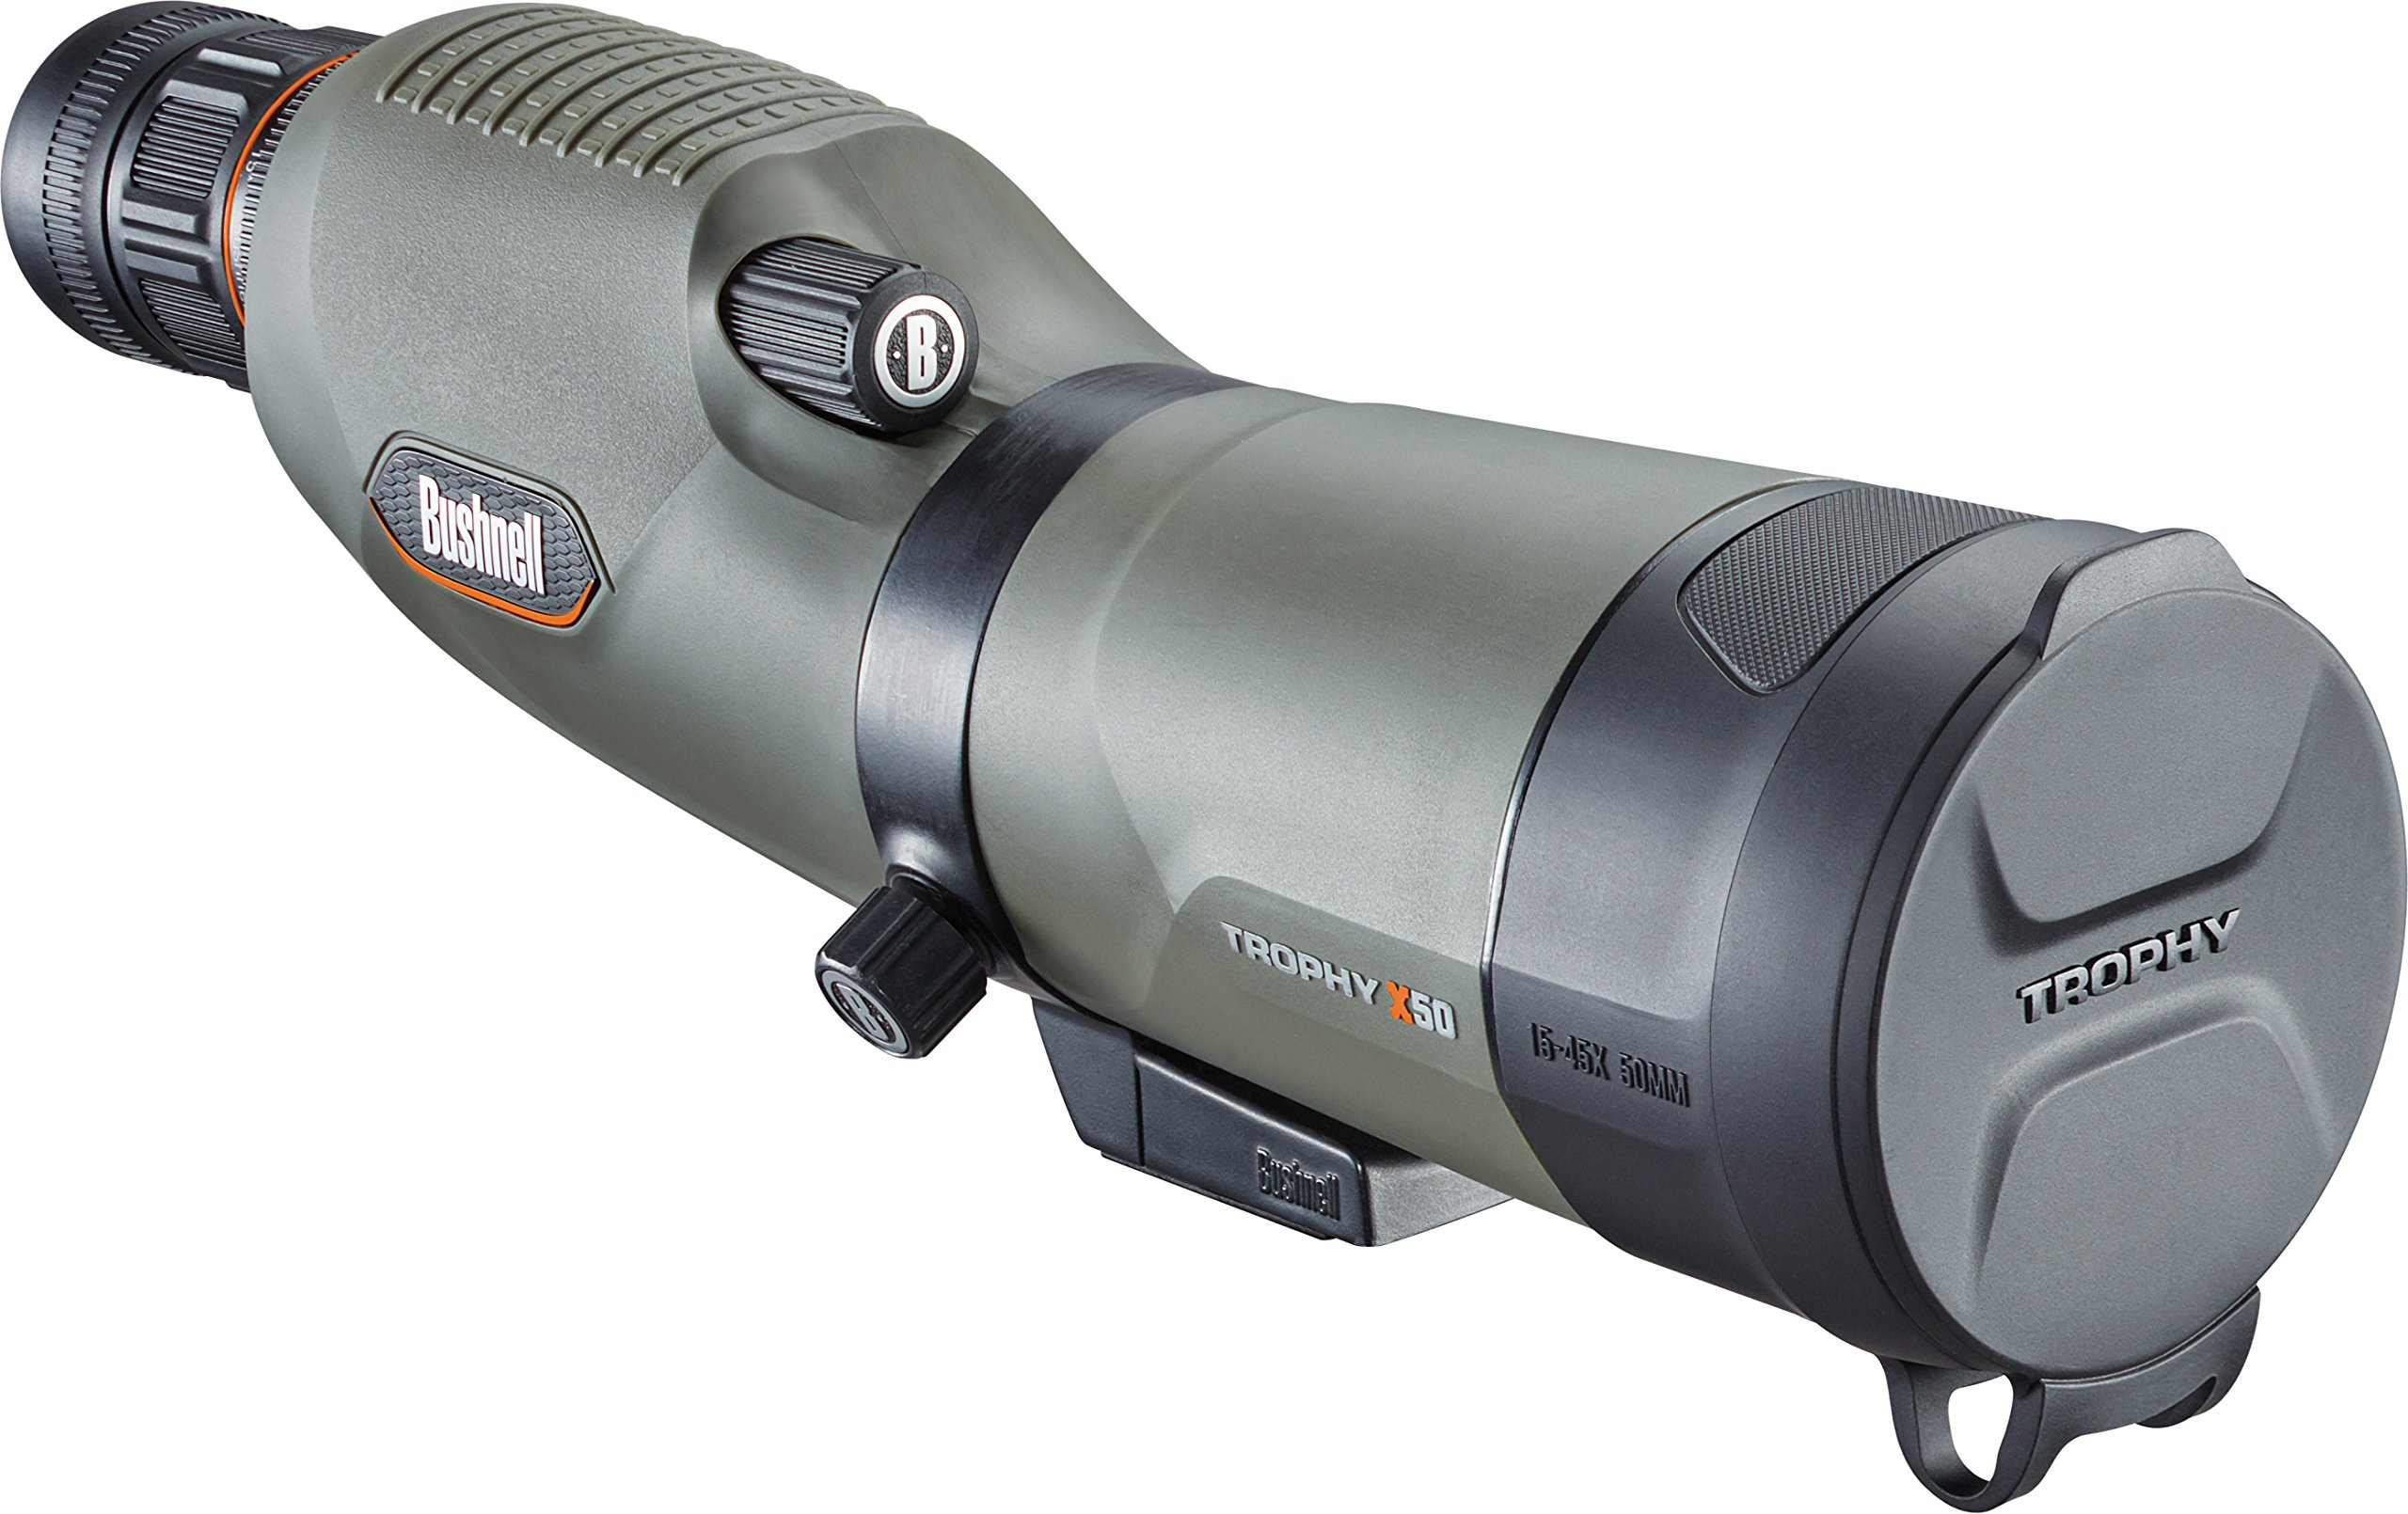 Bushnell Trophy Xtreme Spotting Scope, Green, 20-60 x 65mm by Bushnell (Image #3)